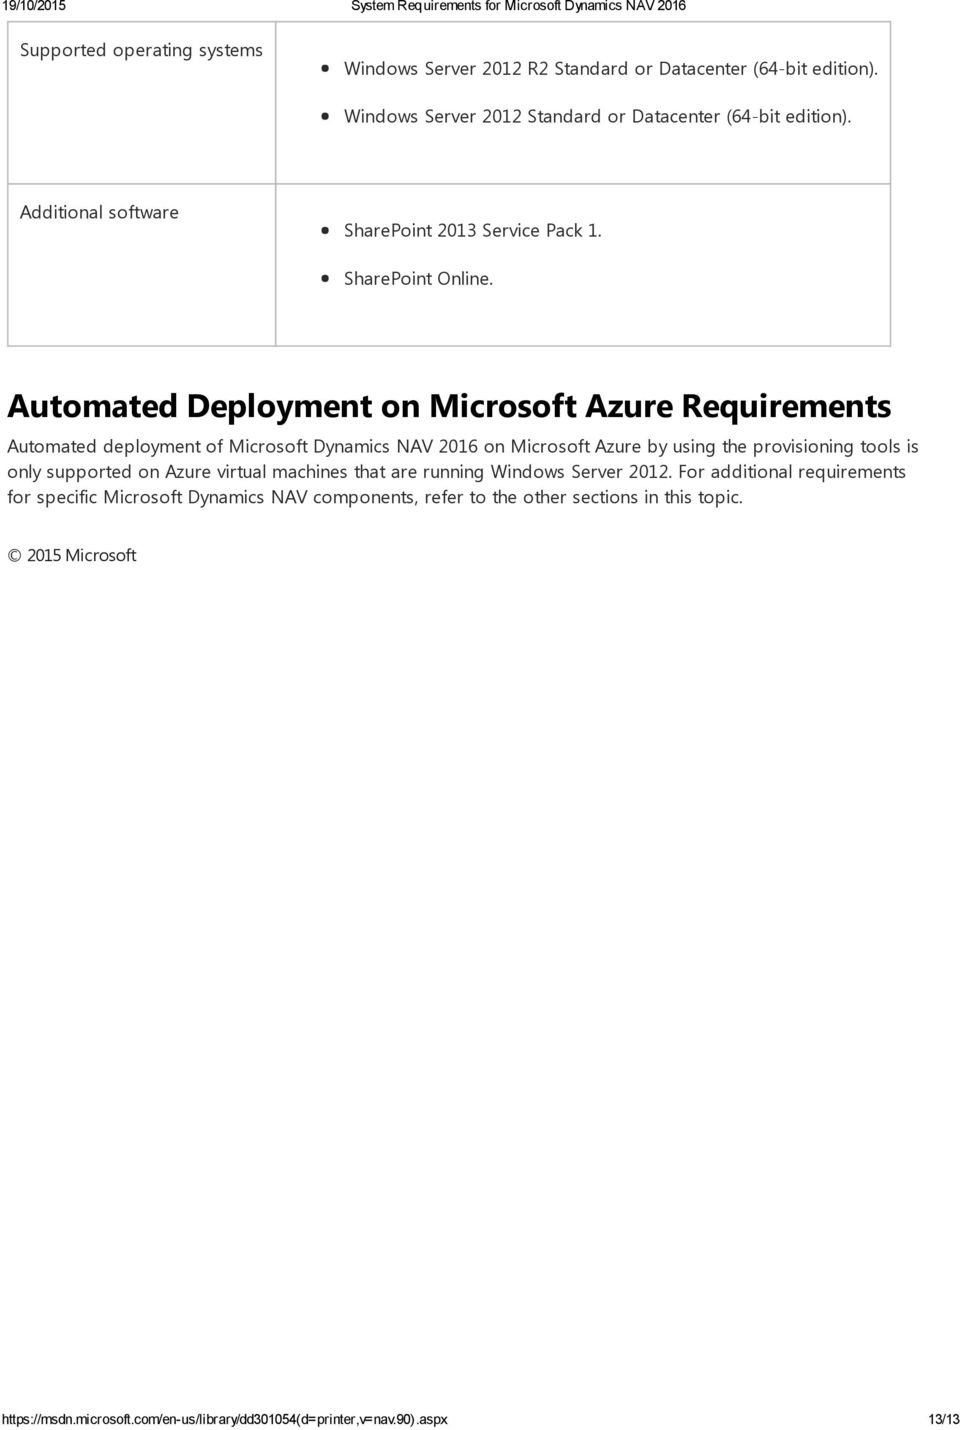 Automated Deployment on Microsoft Azure Requirements Automated deployment of Microsoft Dynamics NAV 2016 on Microsoft Azure by using the provisioning tools is only